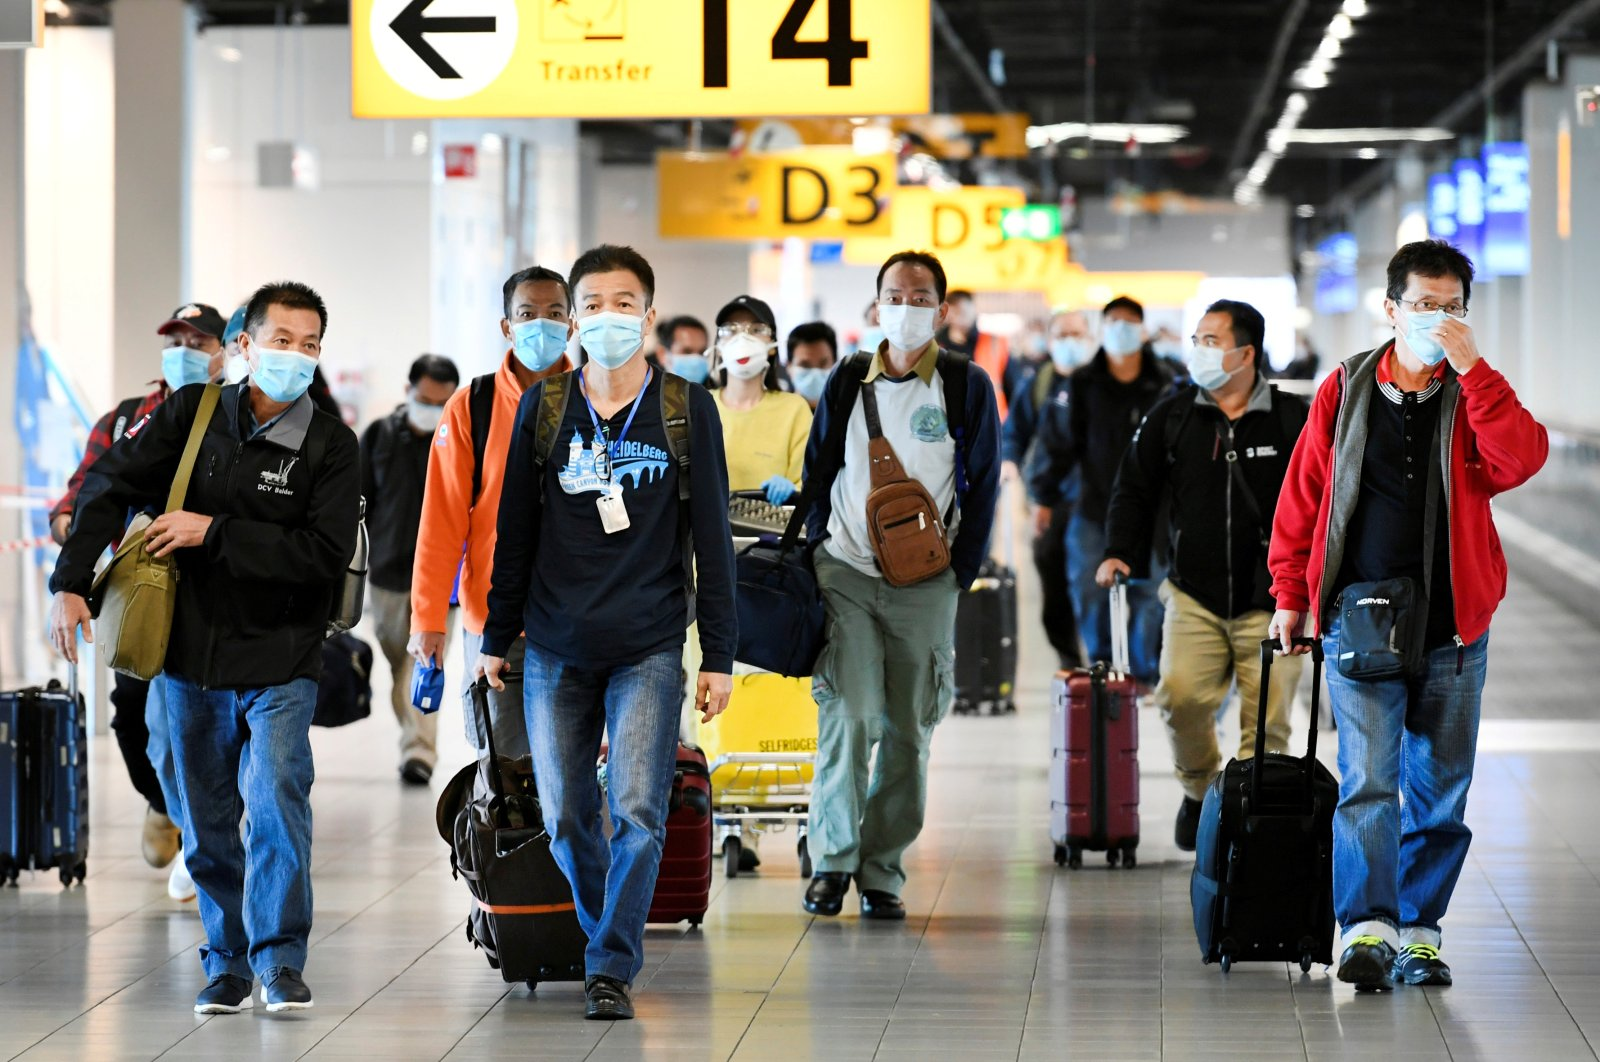 People wearing protective face masks walk, as Schiphol Airport reduces its flights due to the coronavirus disease (COVID-19) outbreak, in Amsterdam, Netherlands on April 2, 2020. (Reuters Photo)